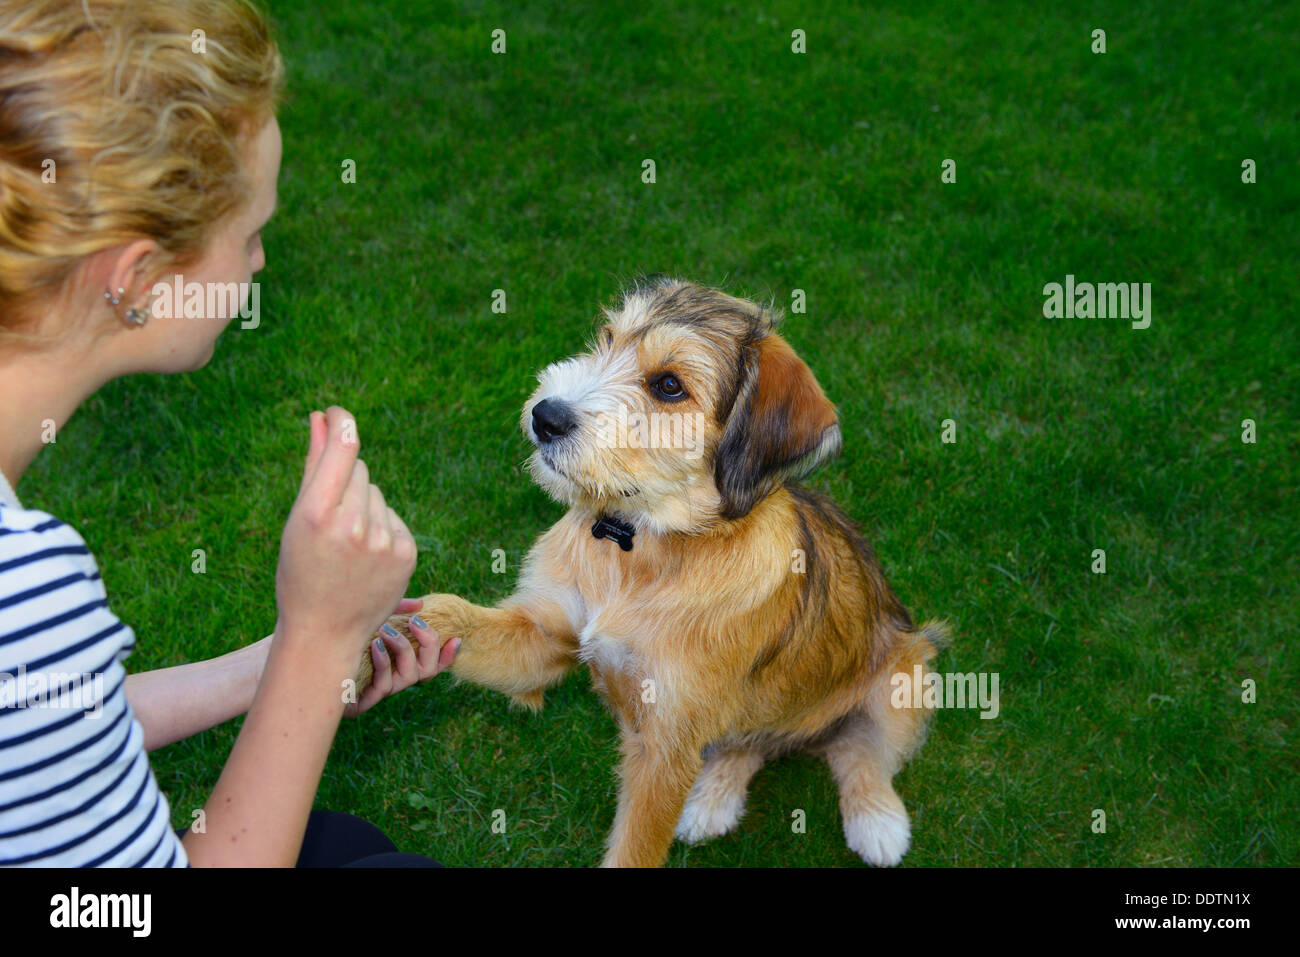 Young puppy being trained by young girl to shake a paw sitting on lawn grass - Stock Image